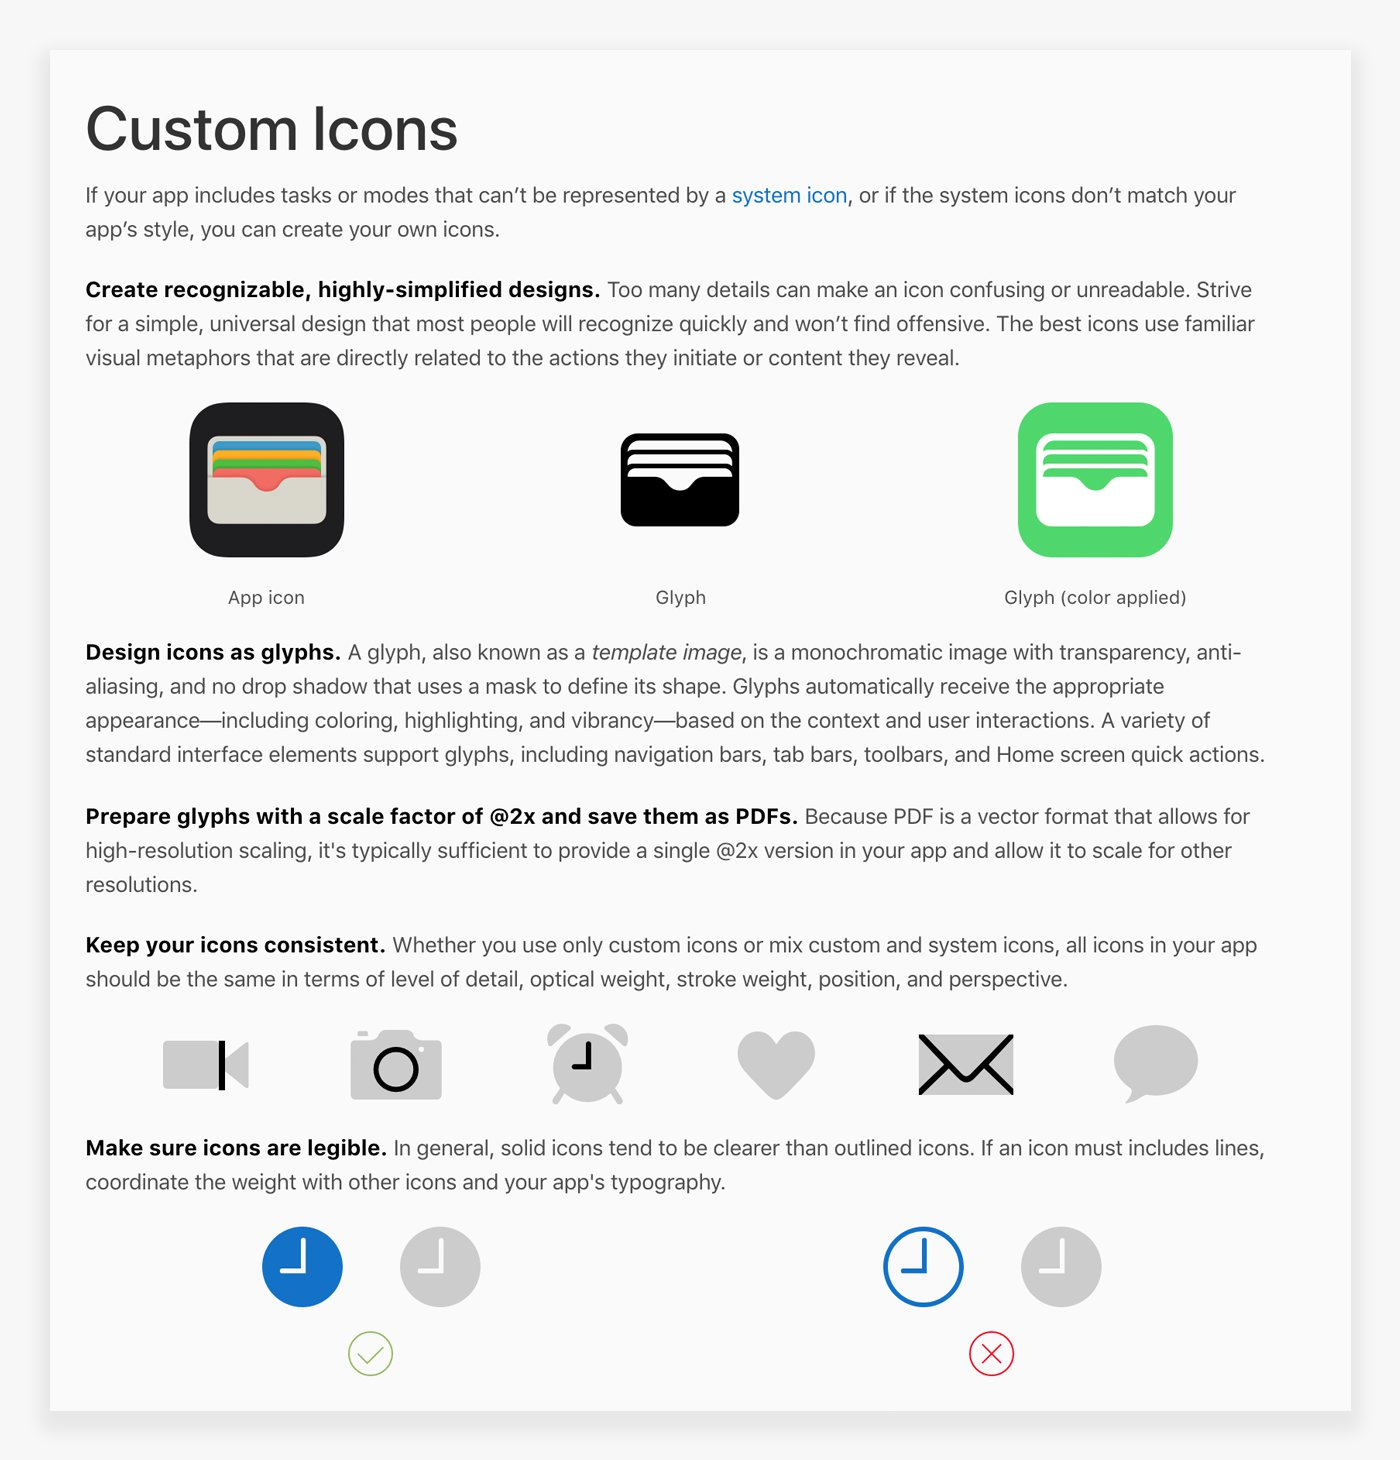 Design Systems Handbook Designbetter The Circuit And Other Components Will Not Work Pdf File Click Here Apple Shows Different Icon Types In Their Ecosystem App Icons Glyphs Used On Color